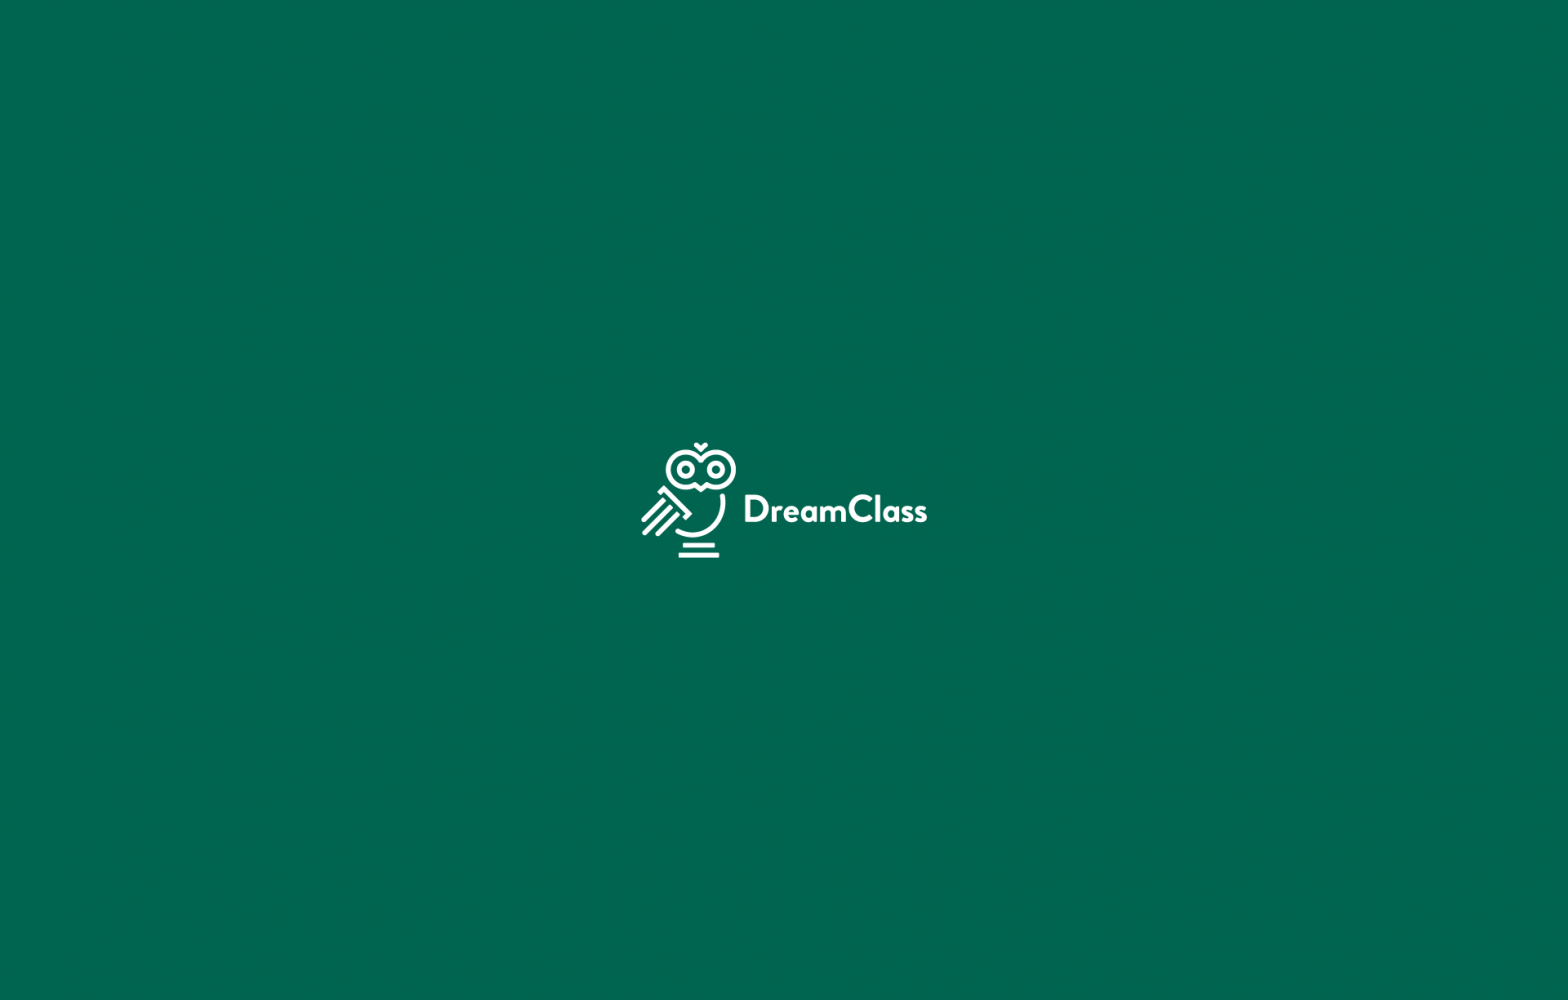 DreamClass - Manage your school smarter